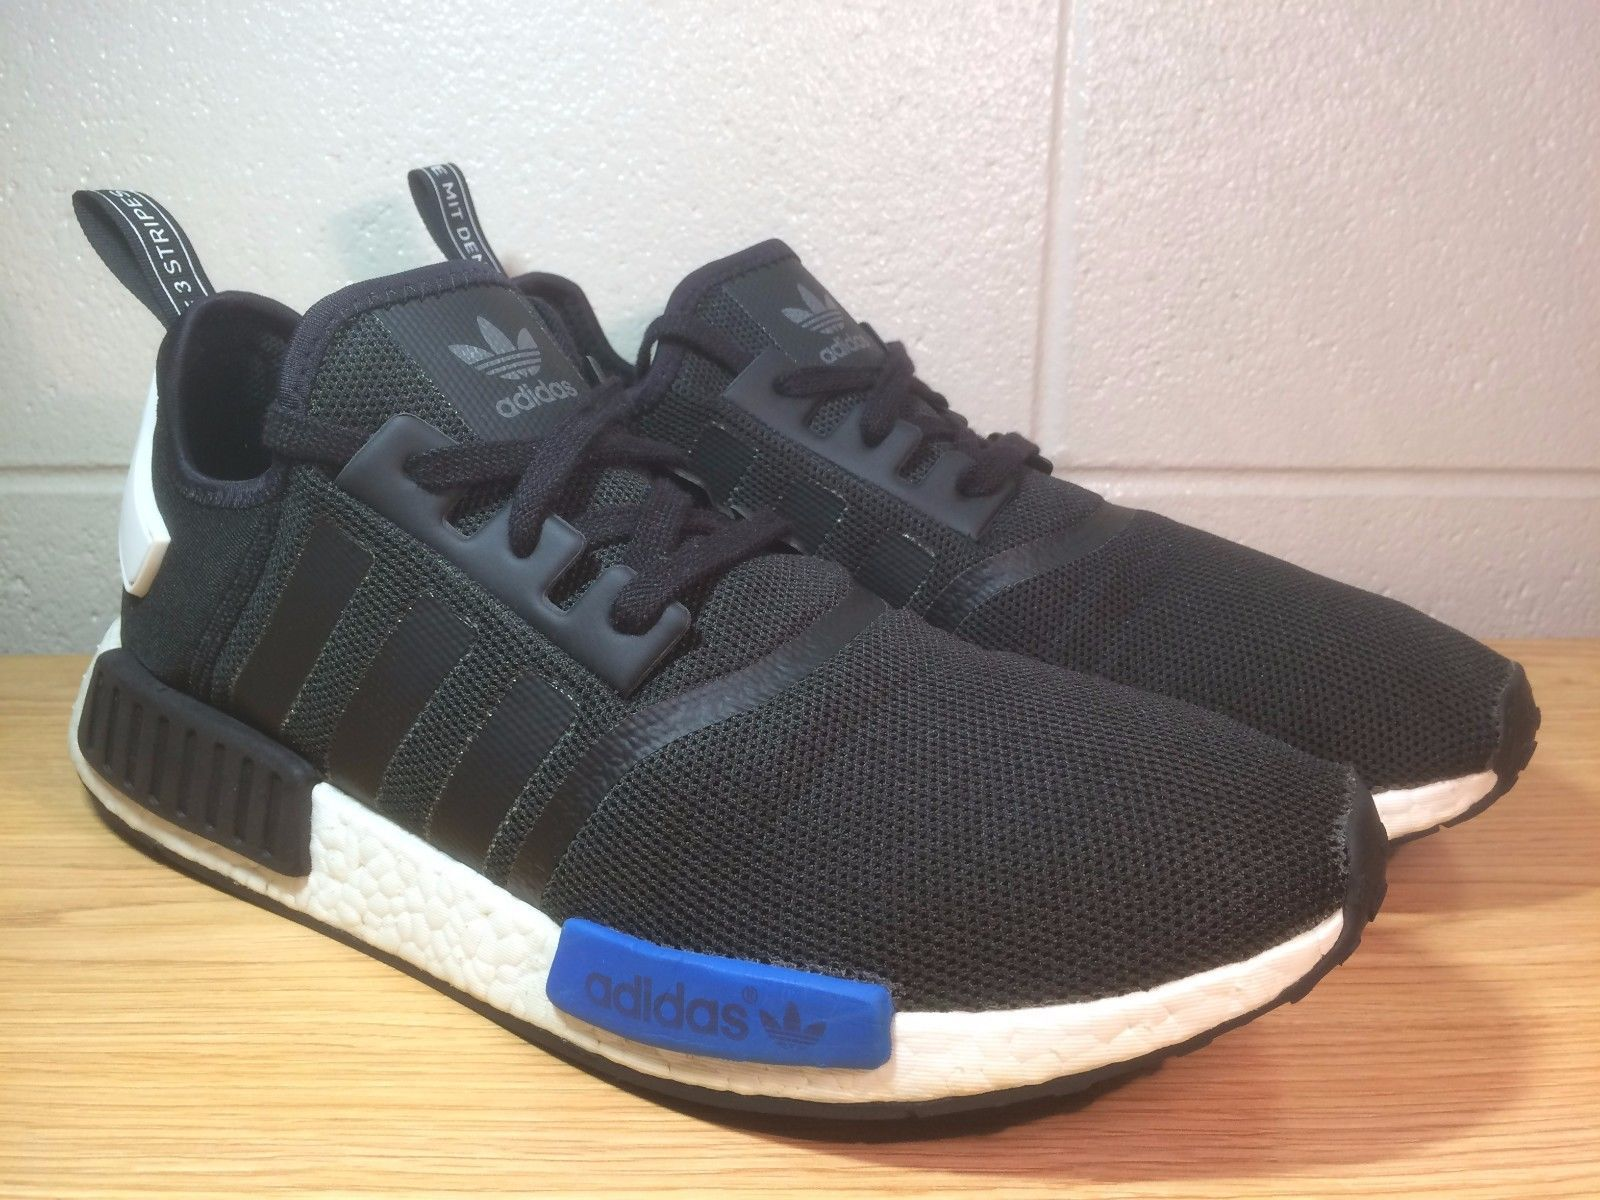 Adidas NMD R1 Mesh Mens Running Shoes Size 13.5 US Black/Blue Ultra Boost